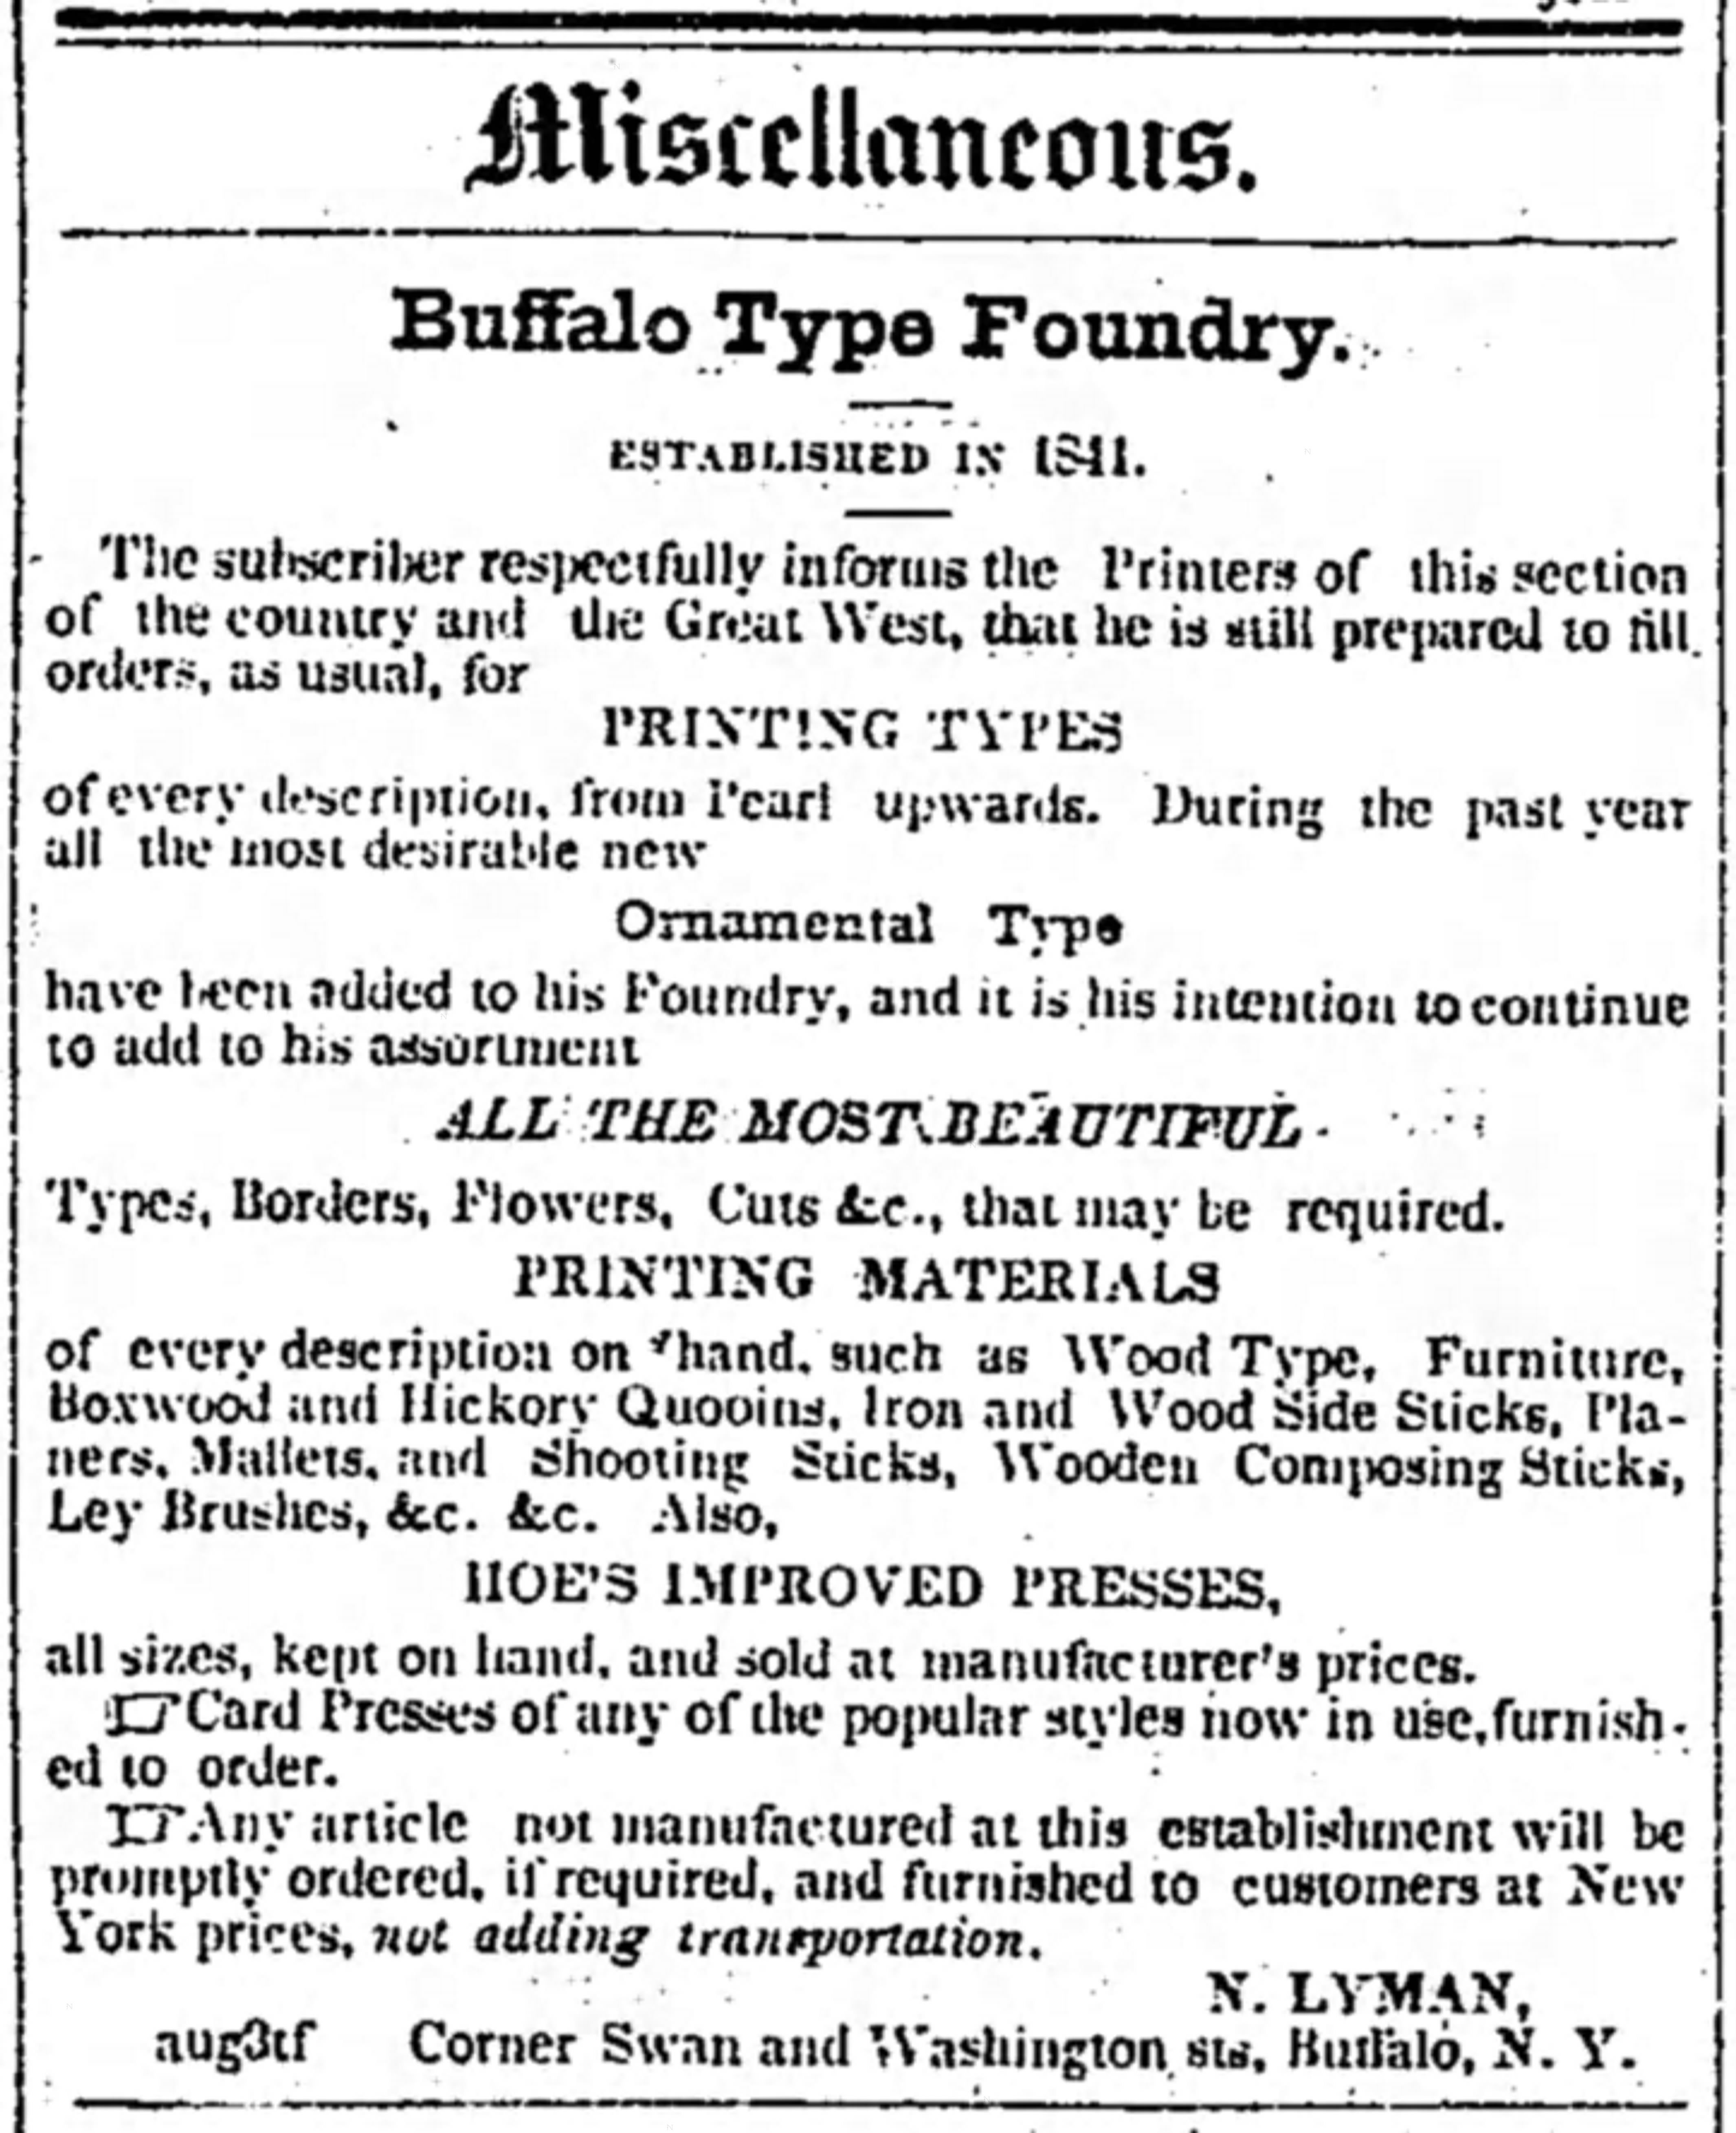 Detroit Free Press ad for Buffalo Type Foundry